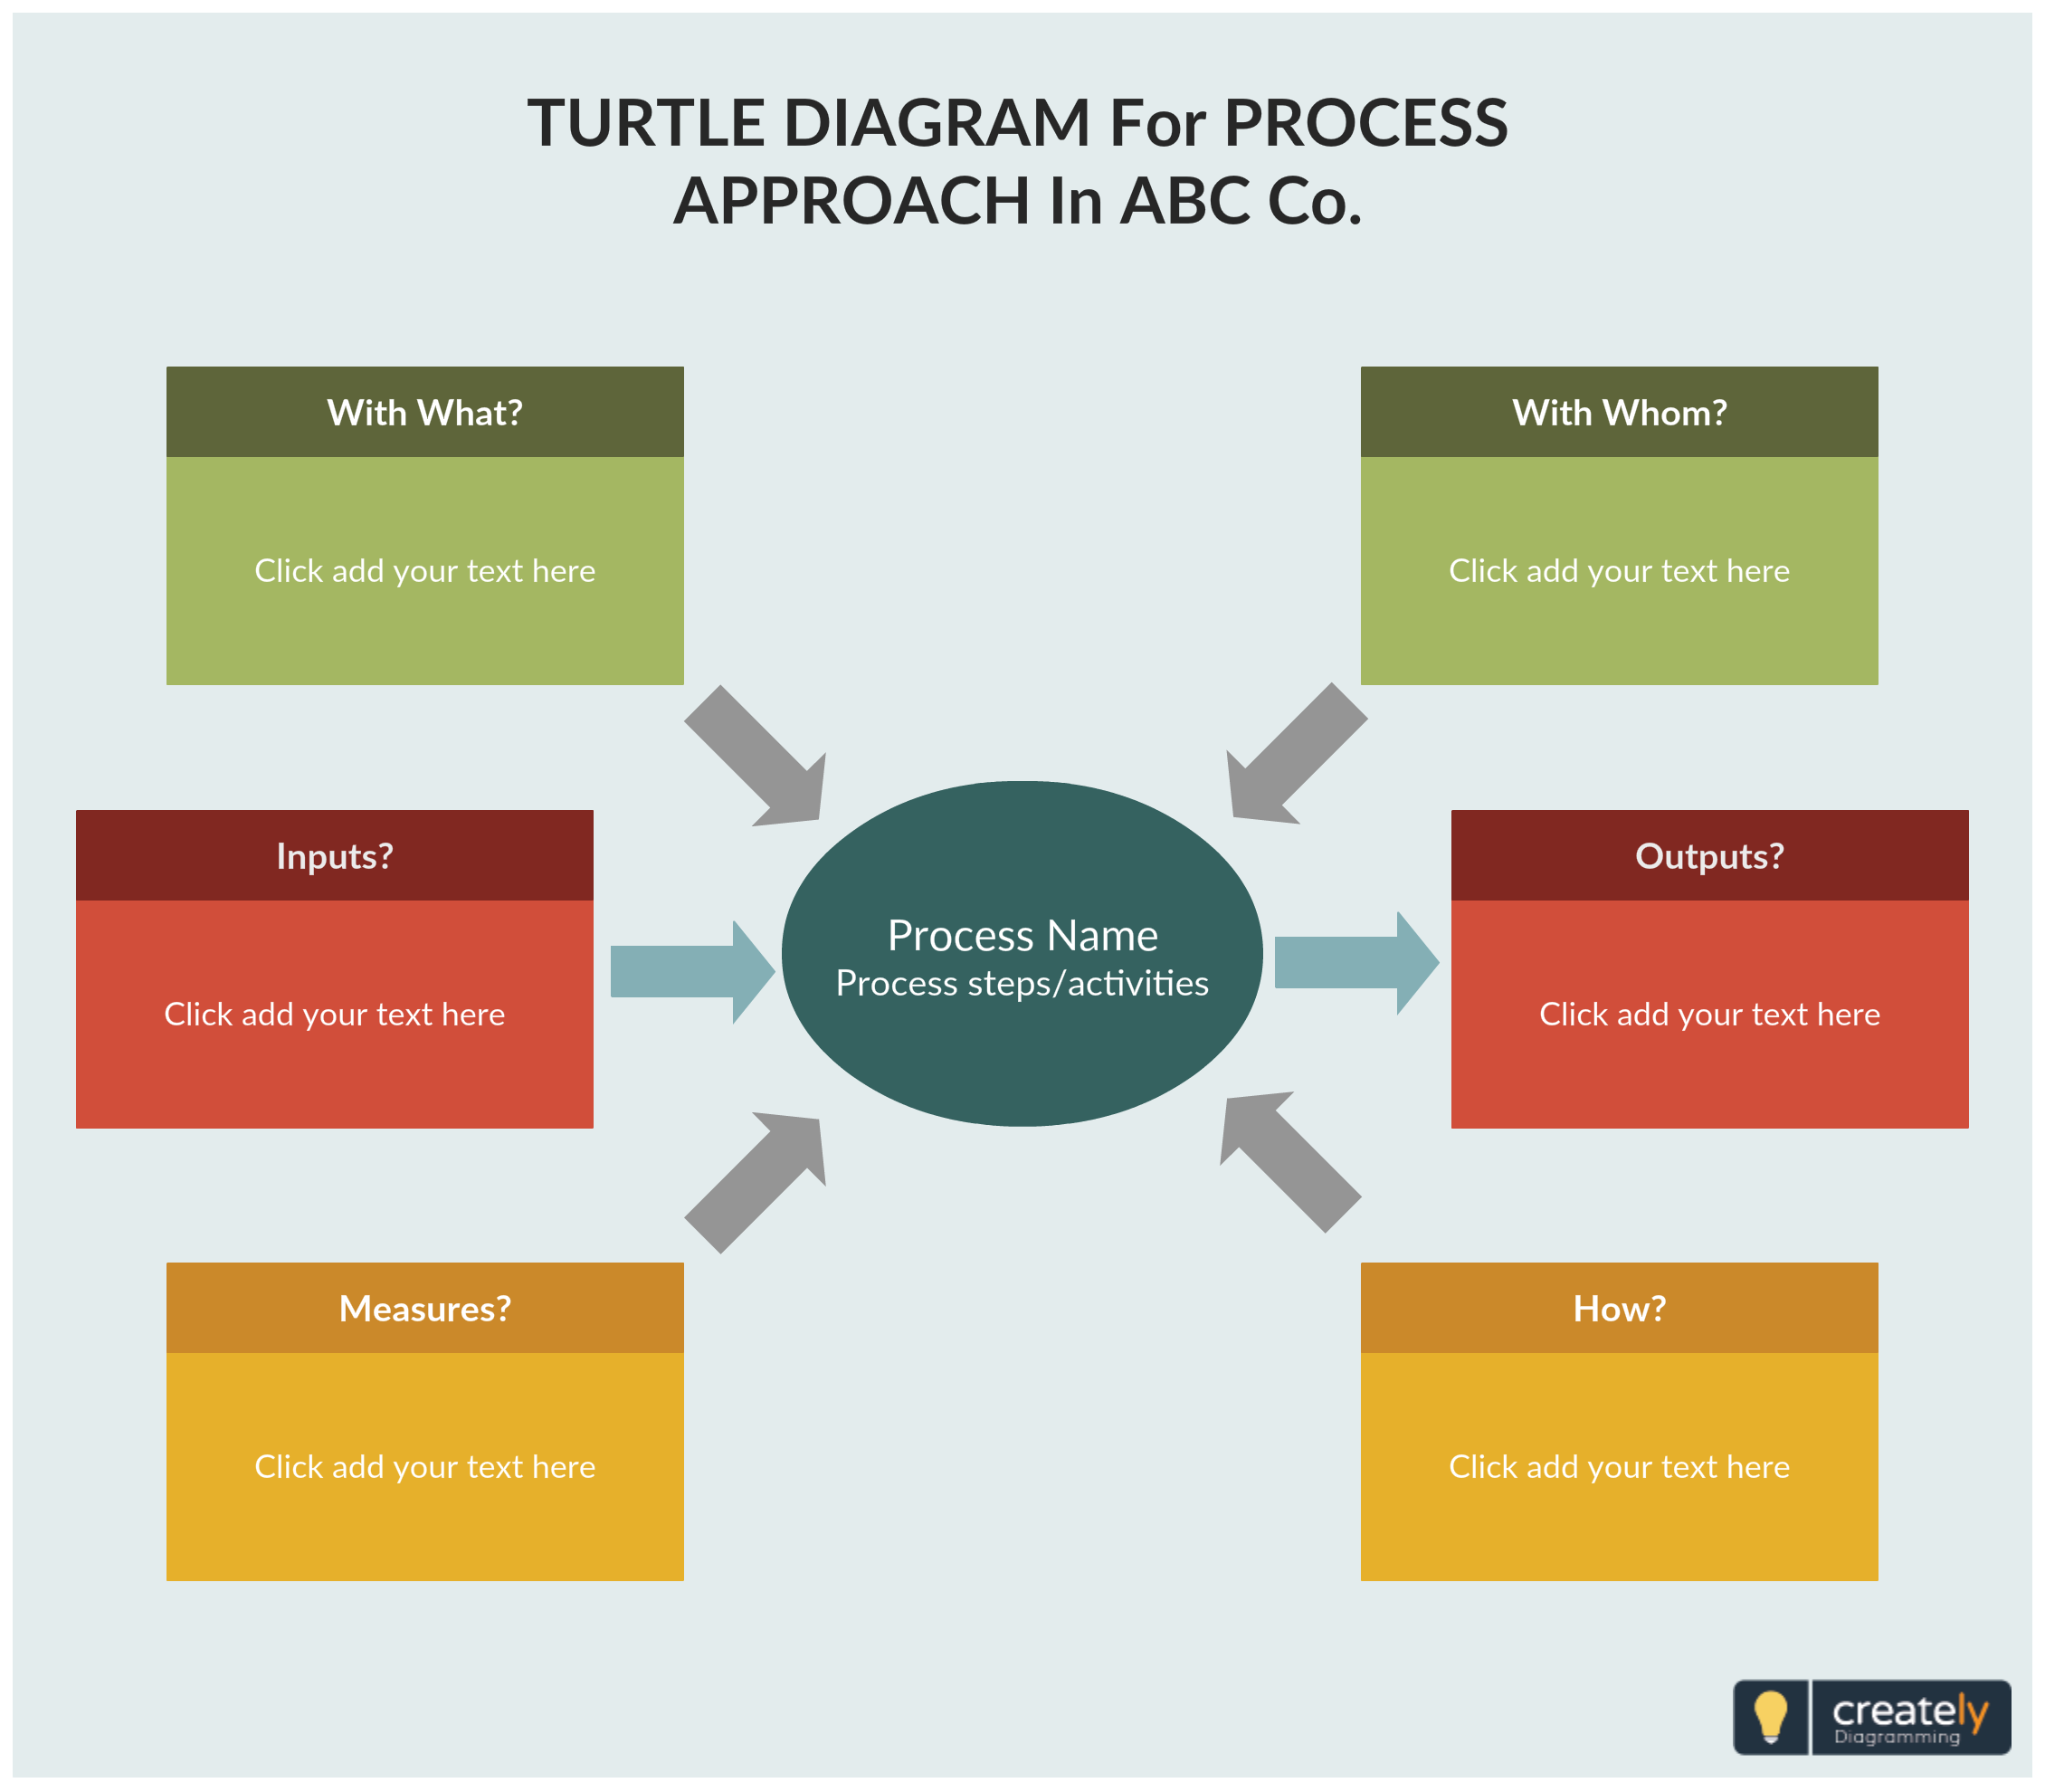 Turtle Diagrams Is A Quality Tool That Visualizes The Elements Of A Process Such As Who Is Involved Inputs Outpu Workflow Diagram Diagram Process Improvement